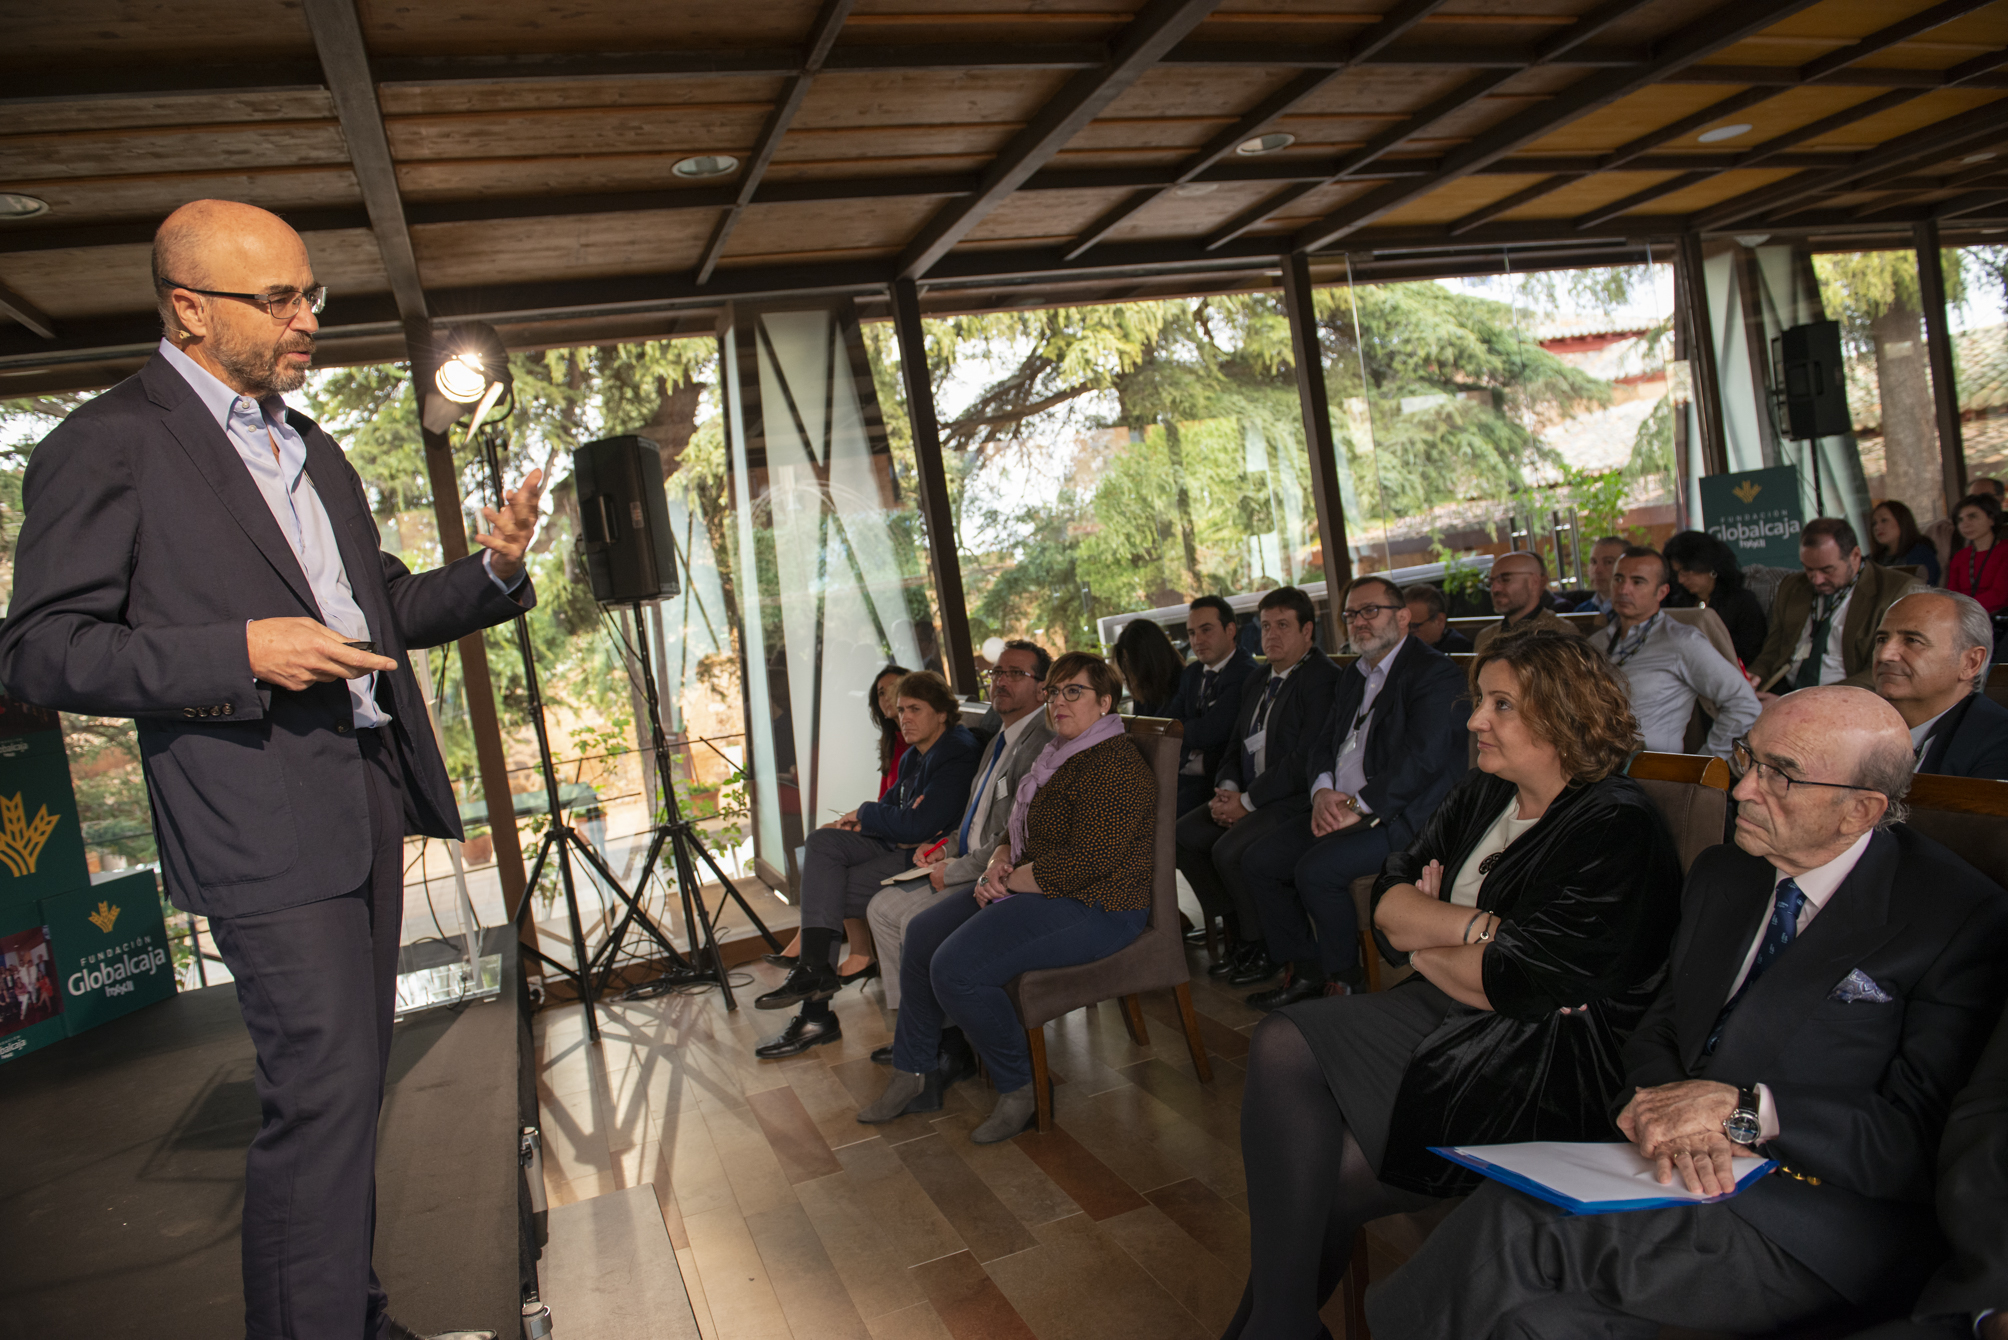 https://blog.globalcaja.es/wp-content/uploads/2019/11/Foro-IESE-FGHXXII-general.jpg